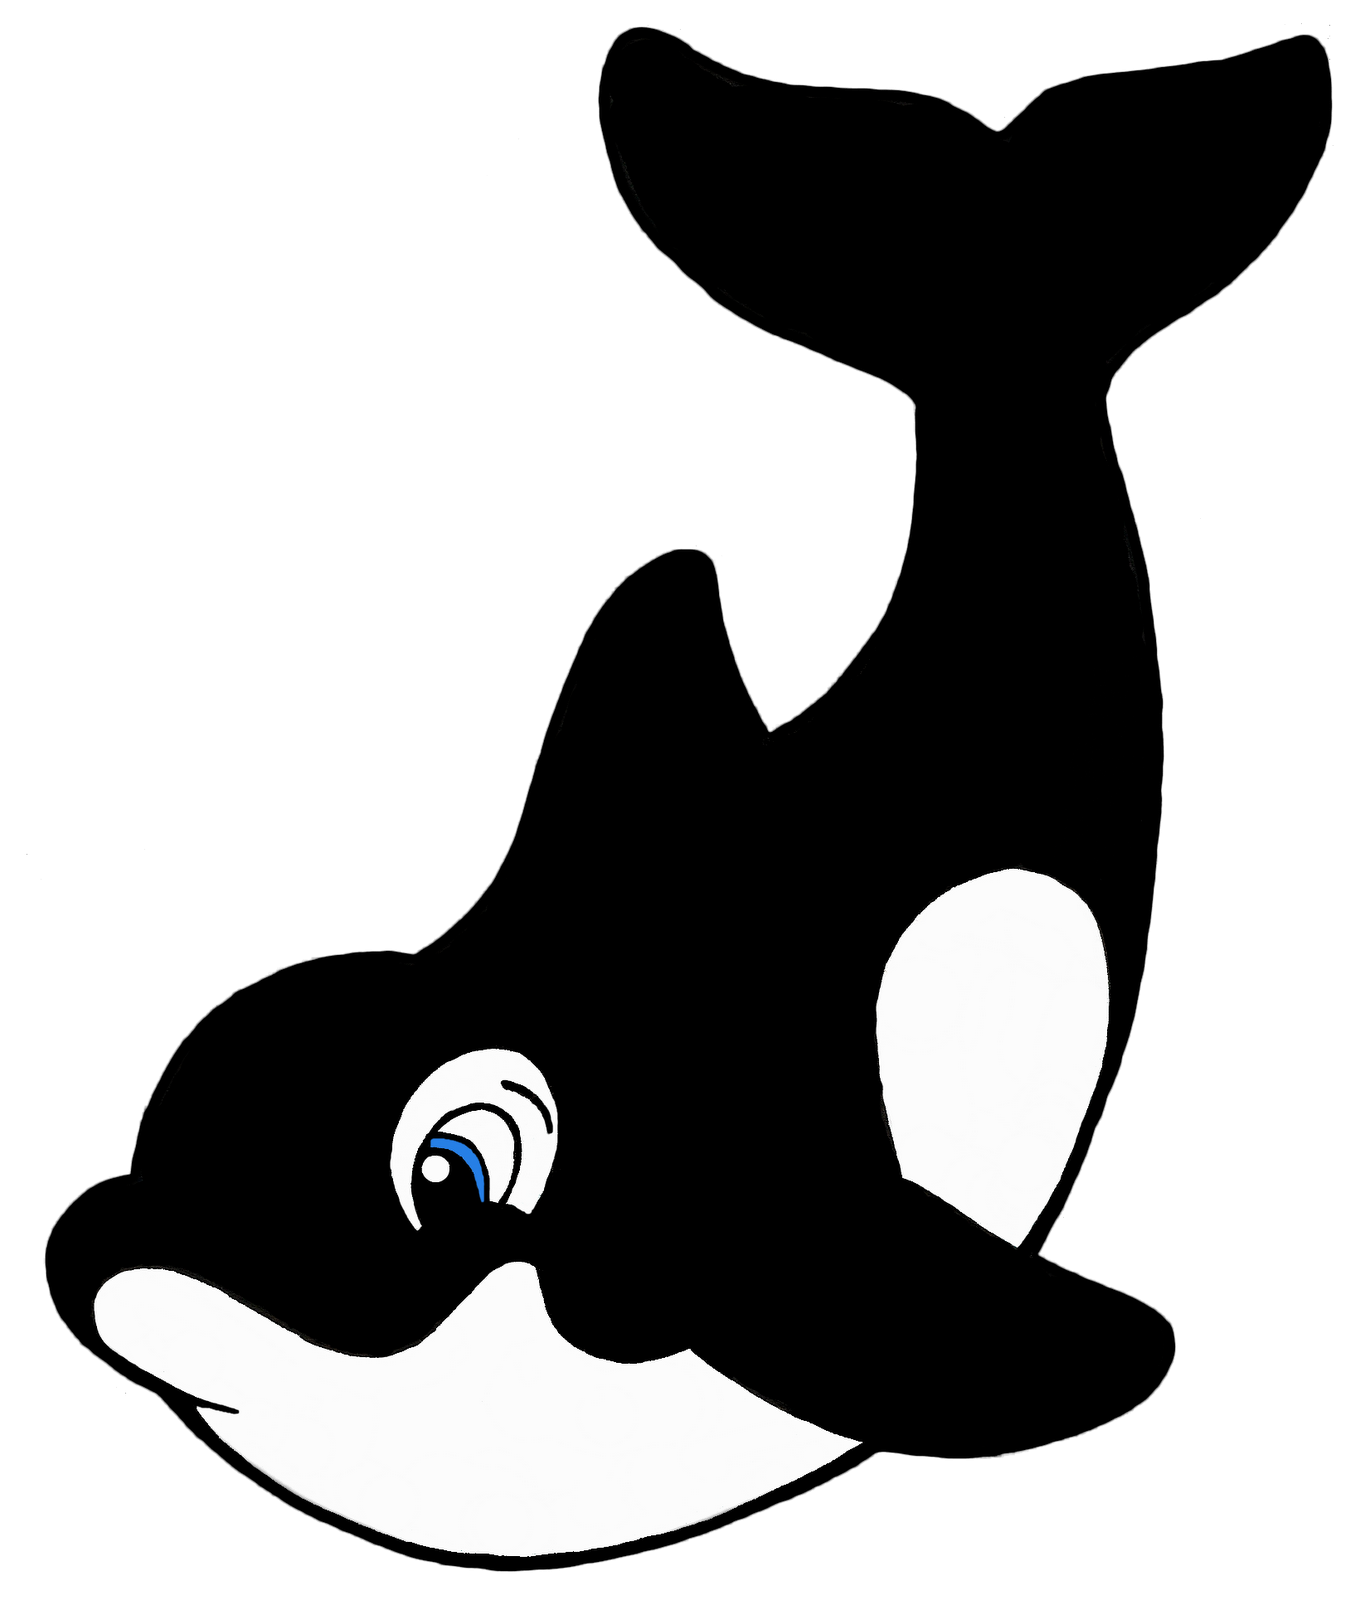 Orca Whale Clipart   Clipart Panda - Free Clipart Images throughout Whale  Clipart